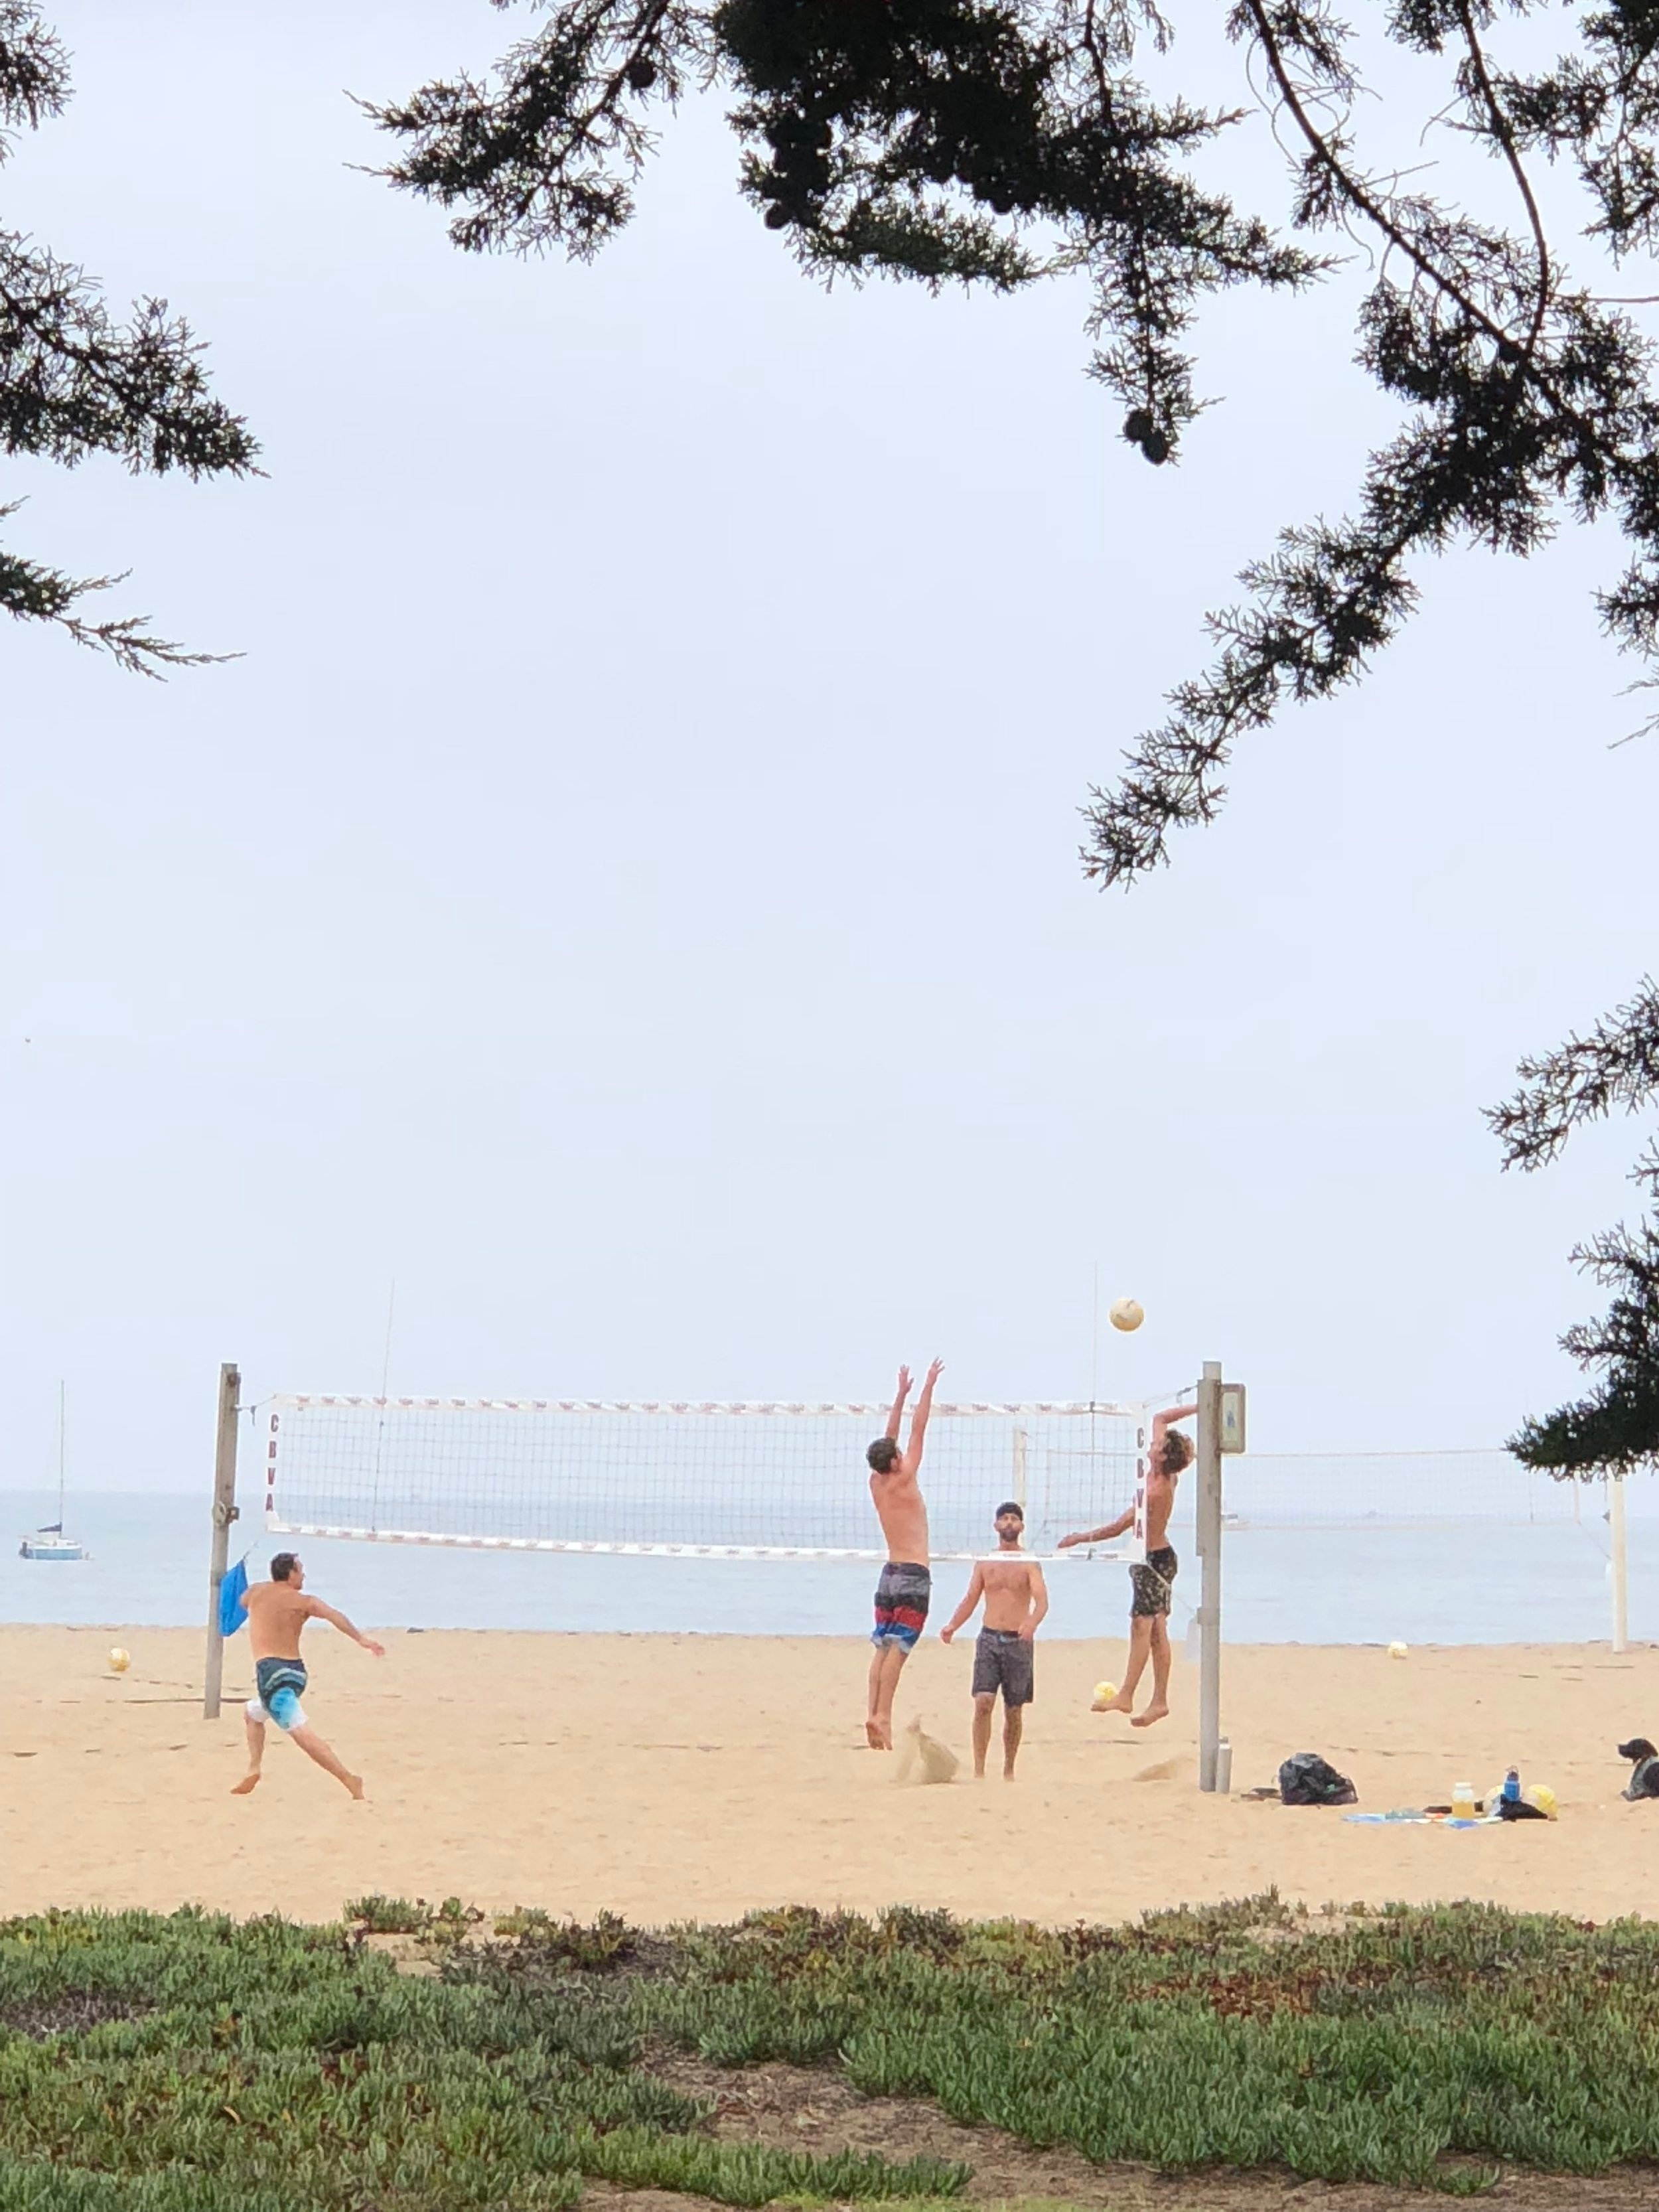 Pick up volleyball games are a weekend standard on East Beach in Santa Barbara.